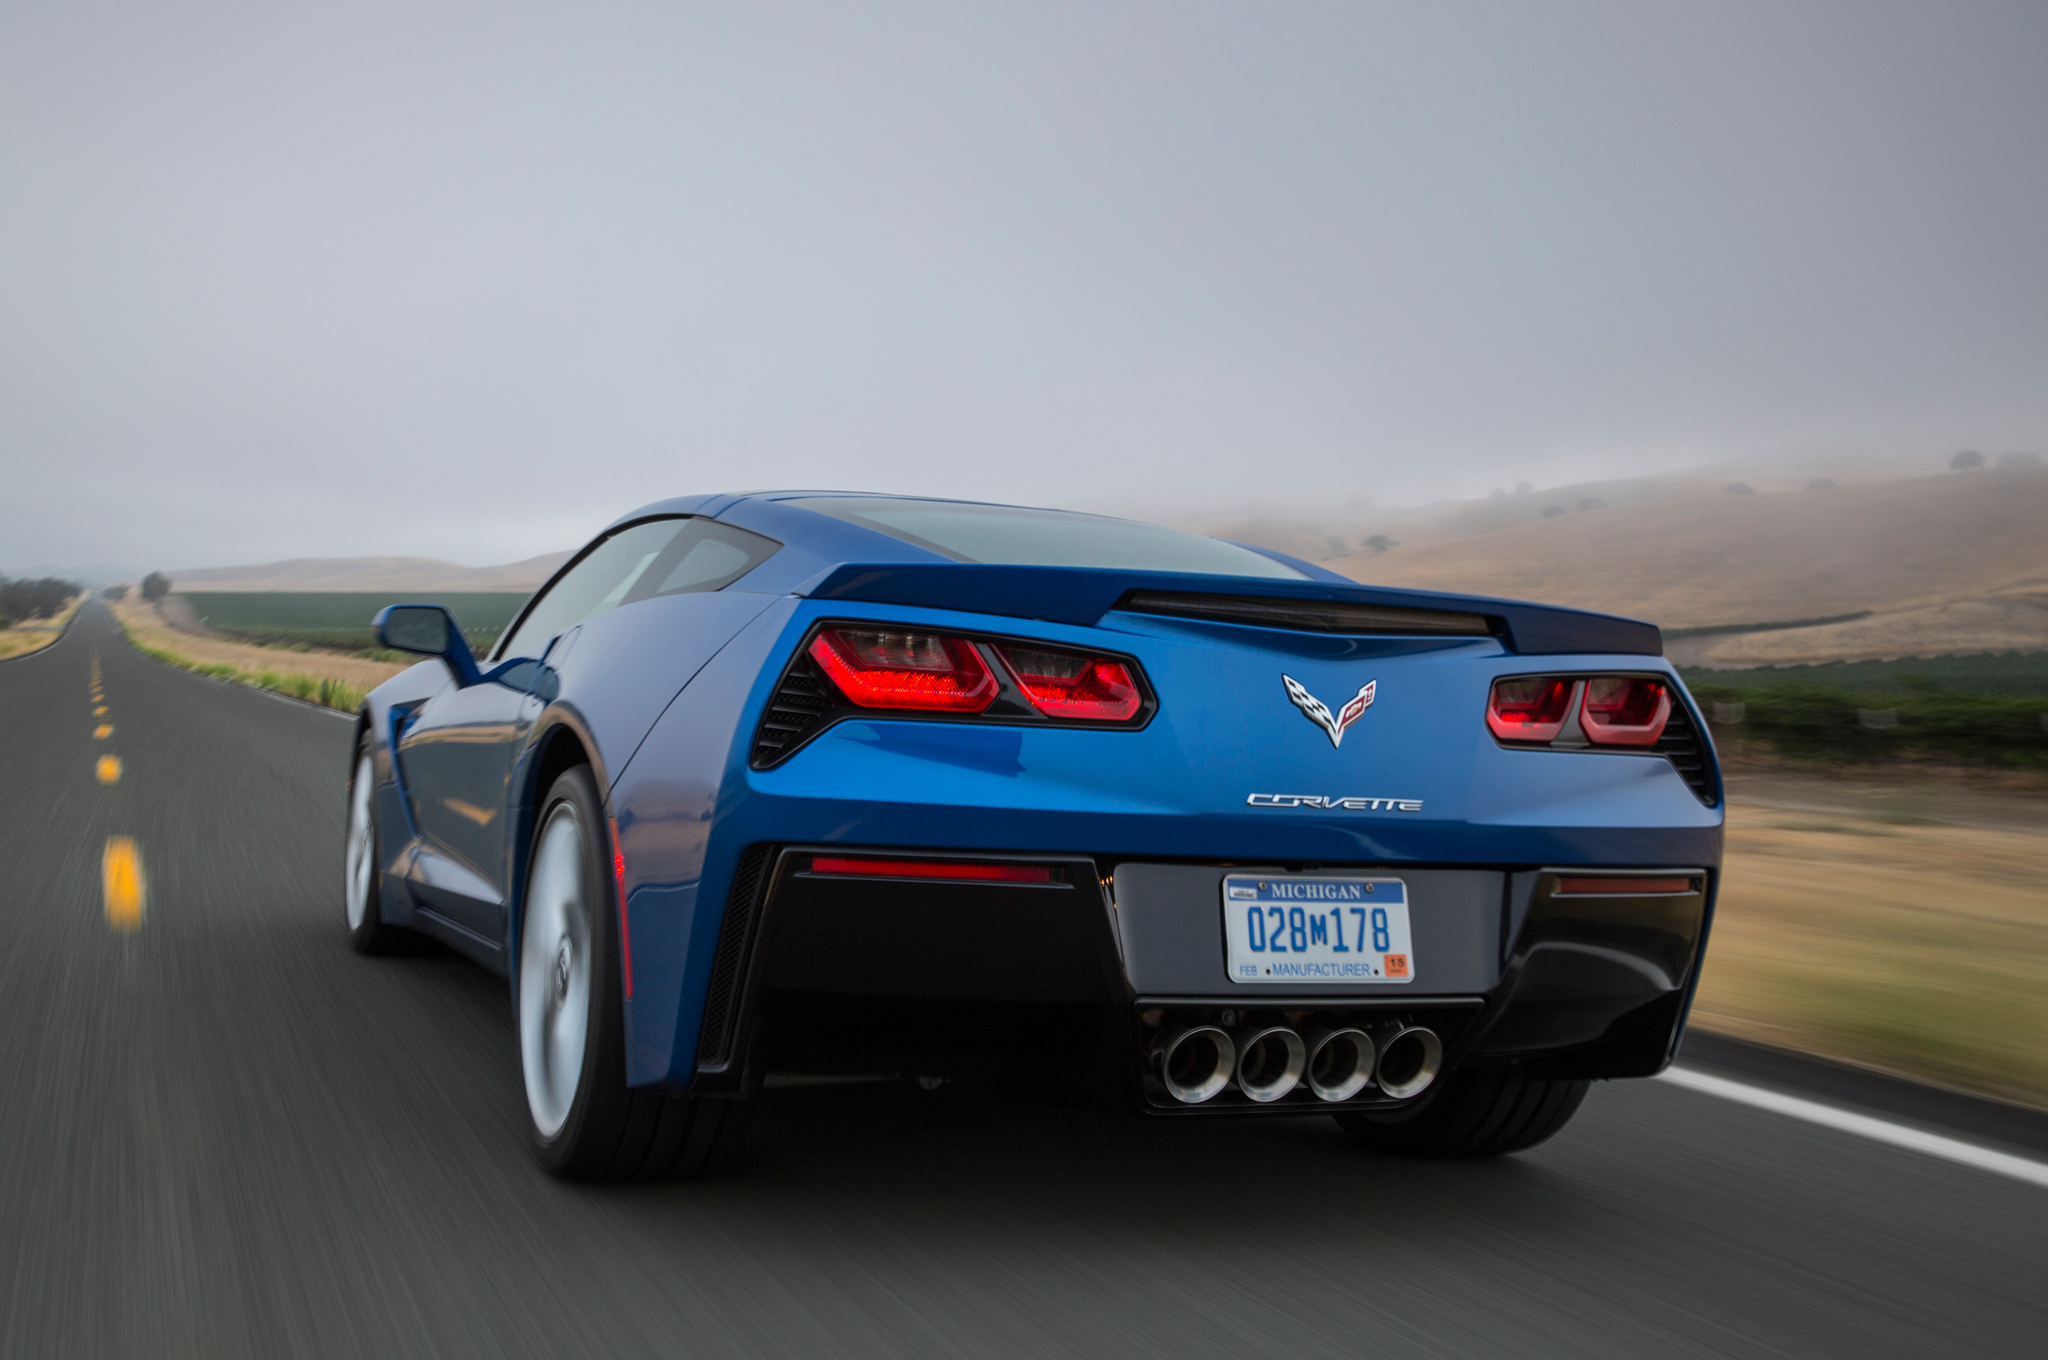 2015 Chevrolet Corvette Eight-Speed Automatic Details Leaked in SAE Paper